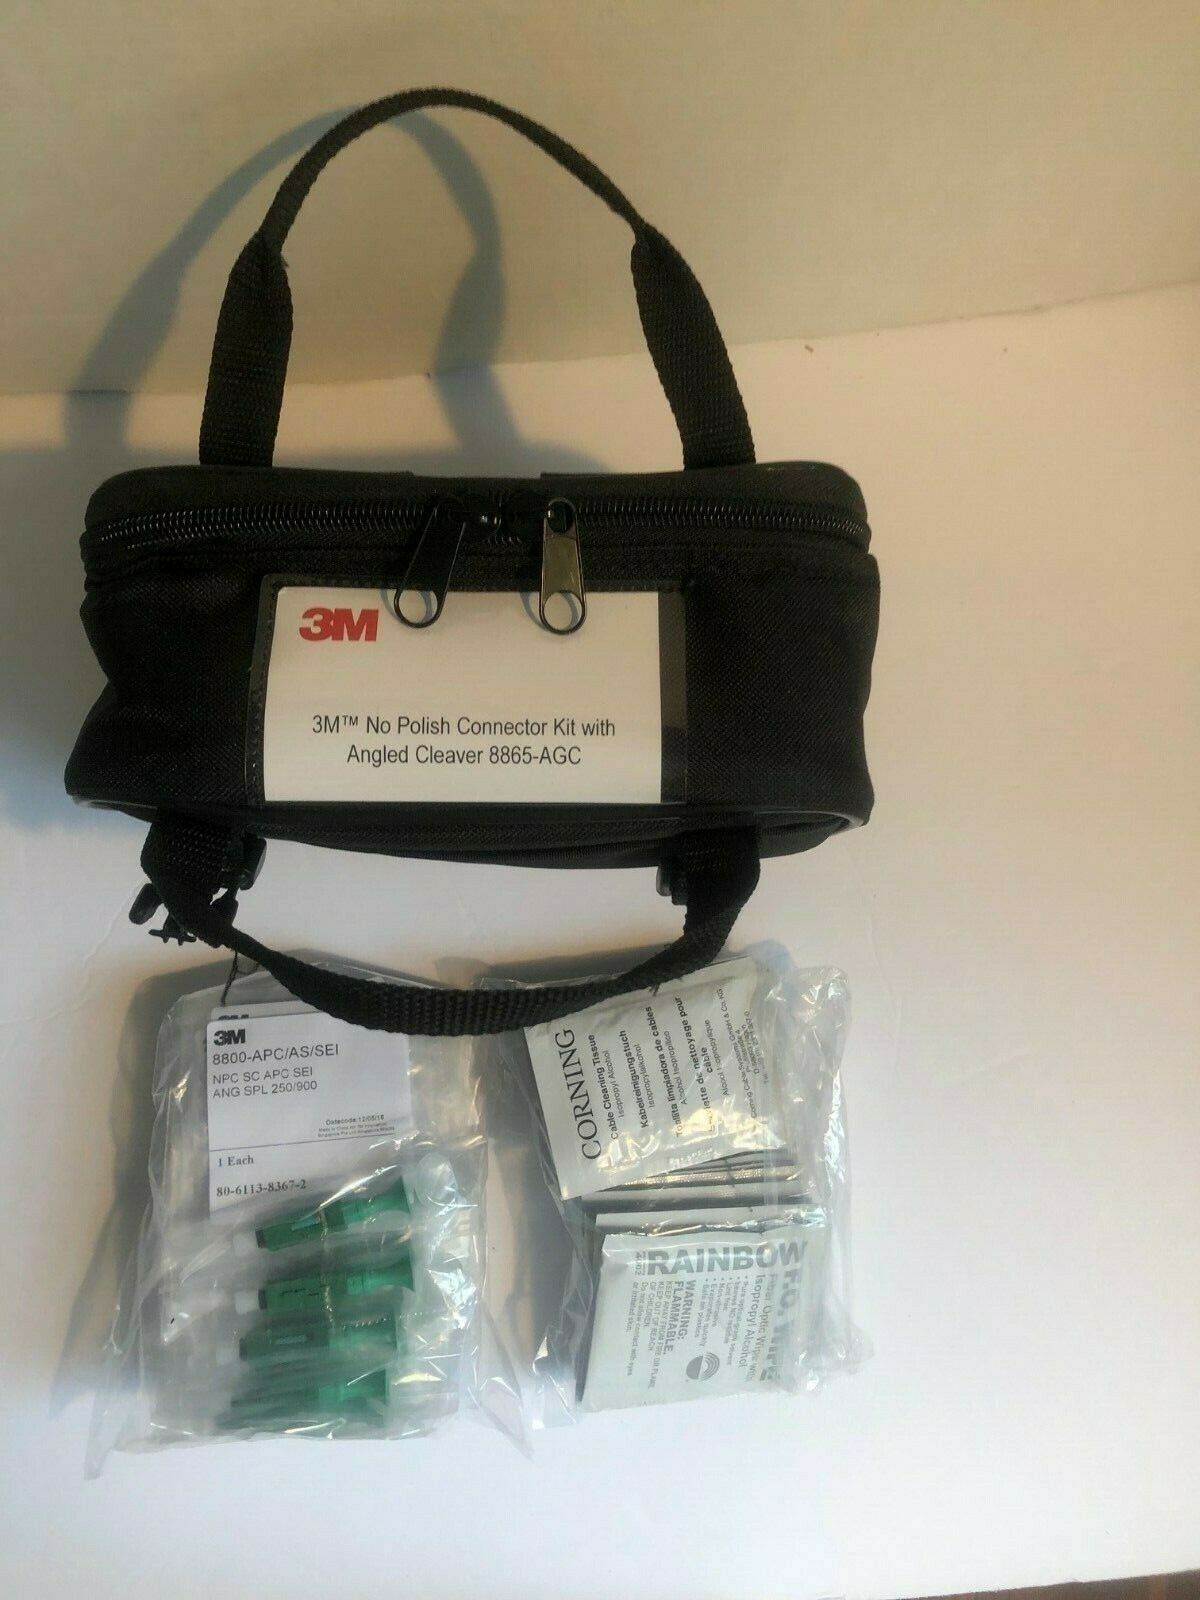 3M 8835-AT LC No Polish LC Connector Assembly Tool